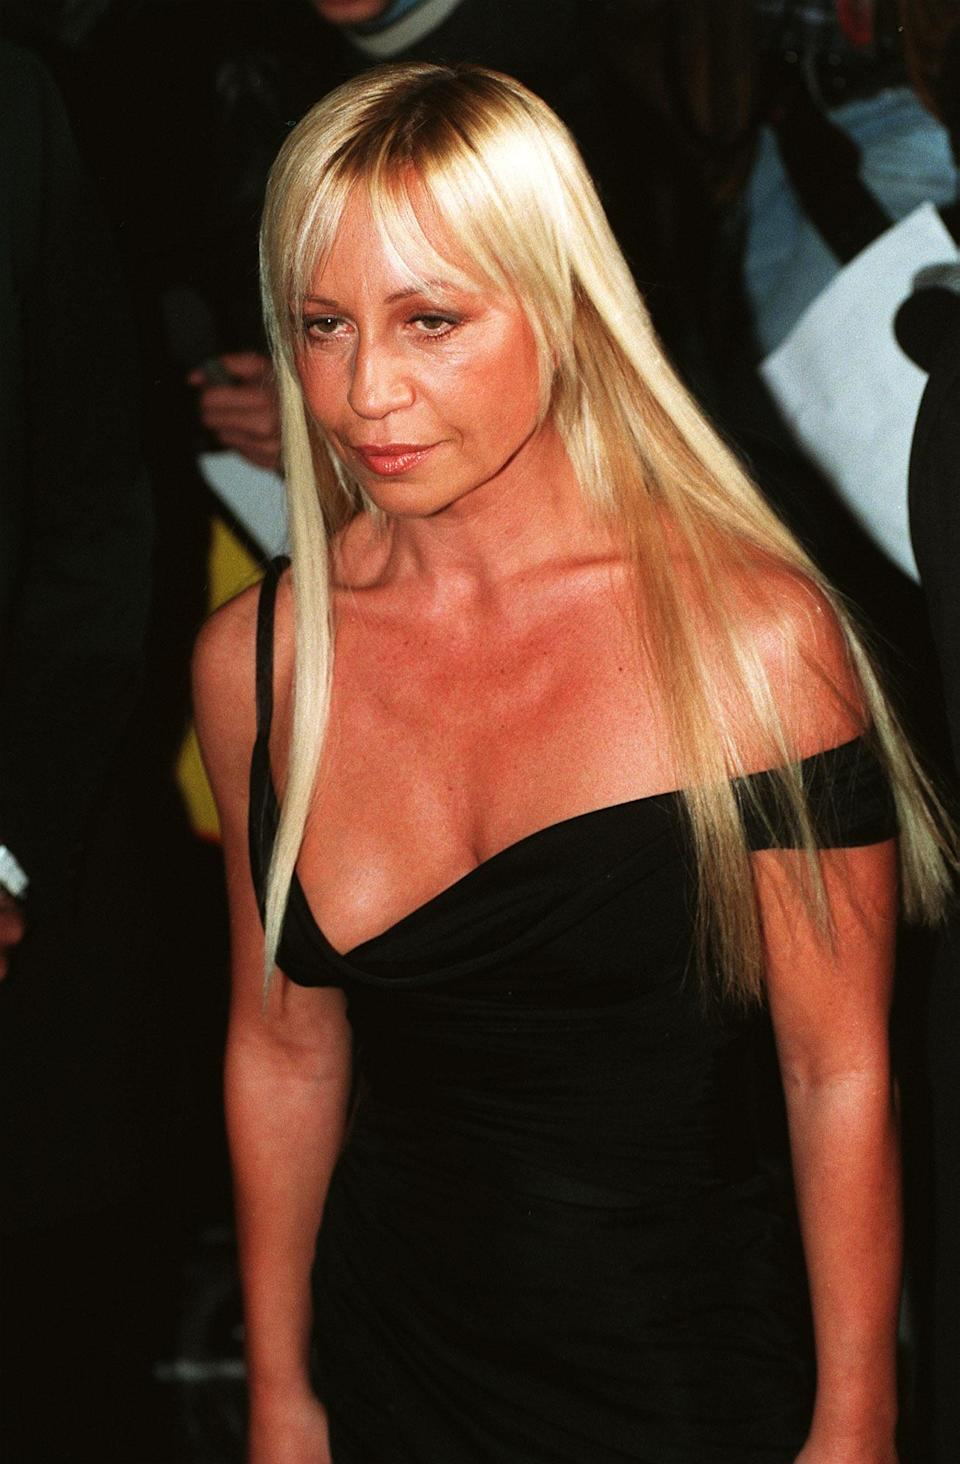 <p>Three months after Gianni was murdered, Donatella appears in public – still with her natural glow at the age of 42. <i>[Photo: PA]</i> </p>